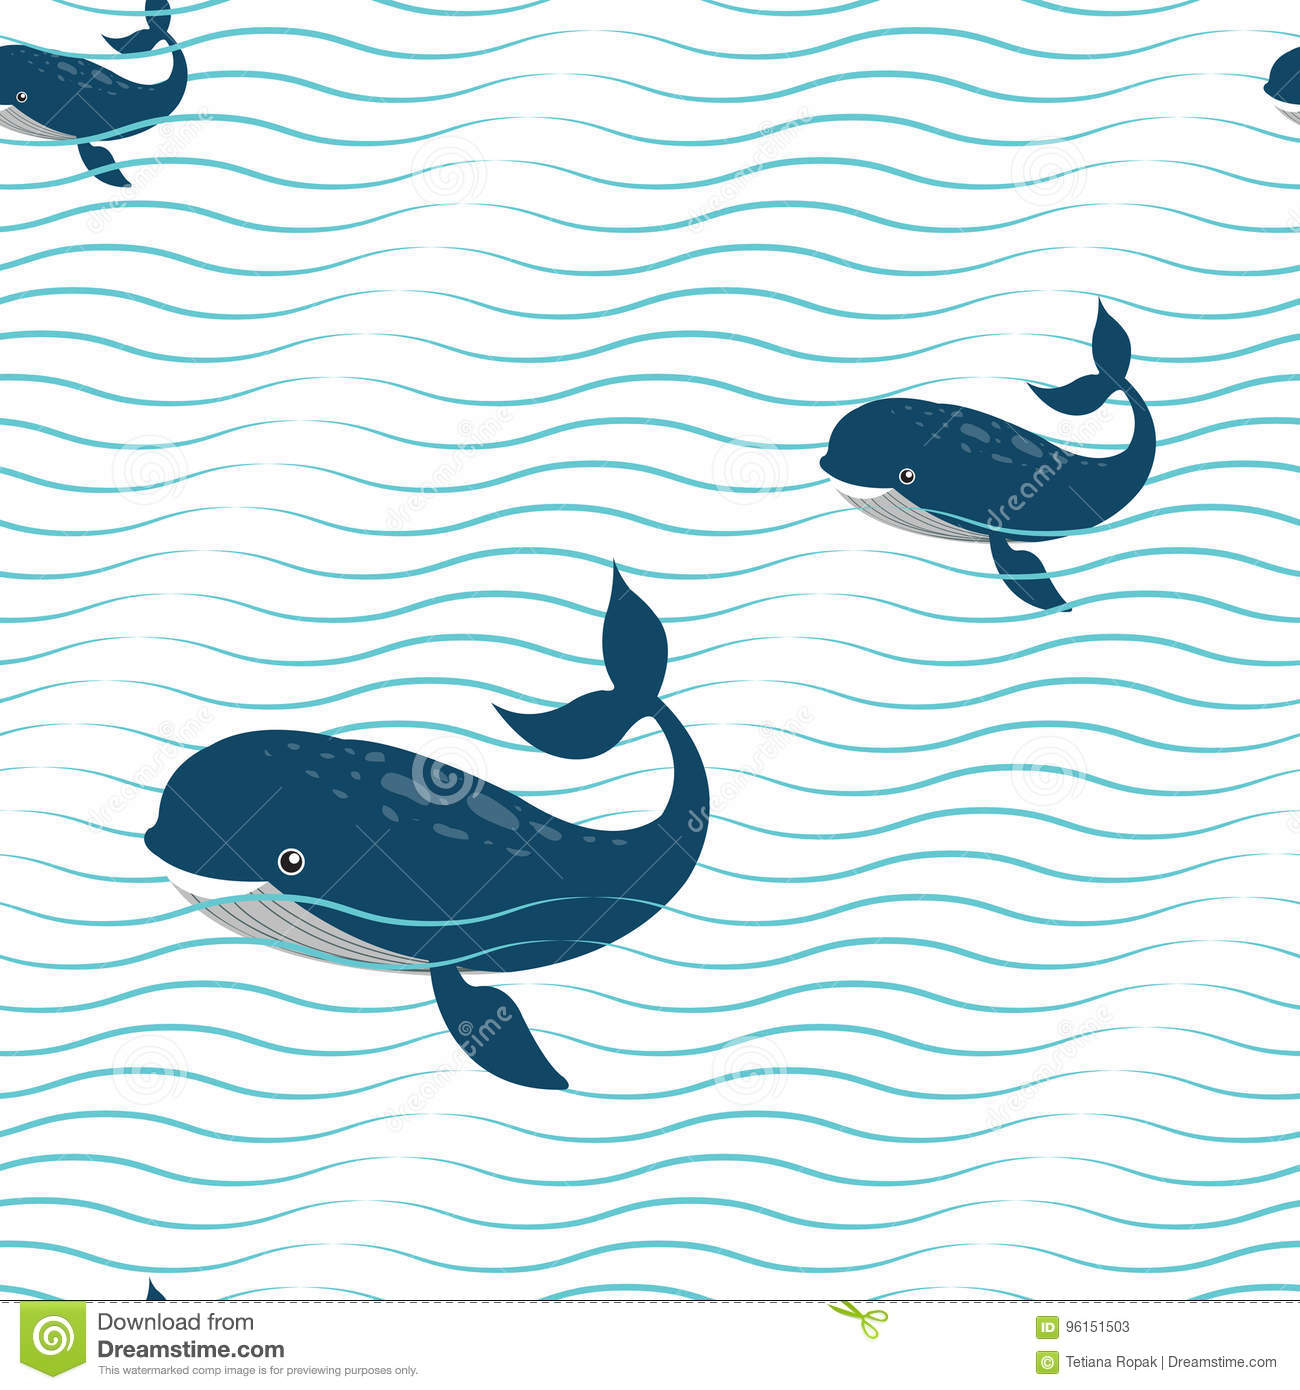 abstract wavy seamless pattern with whales background fashion wave